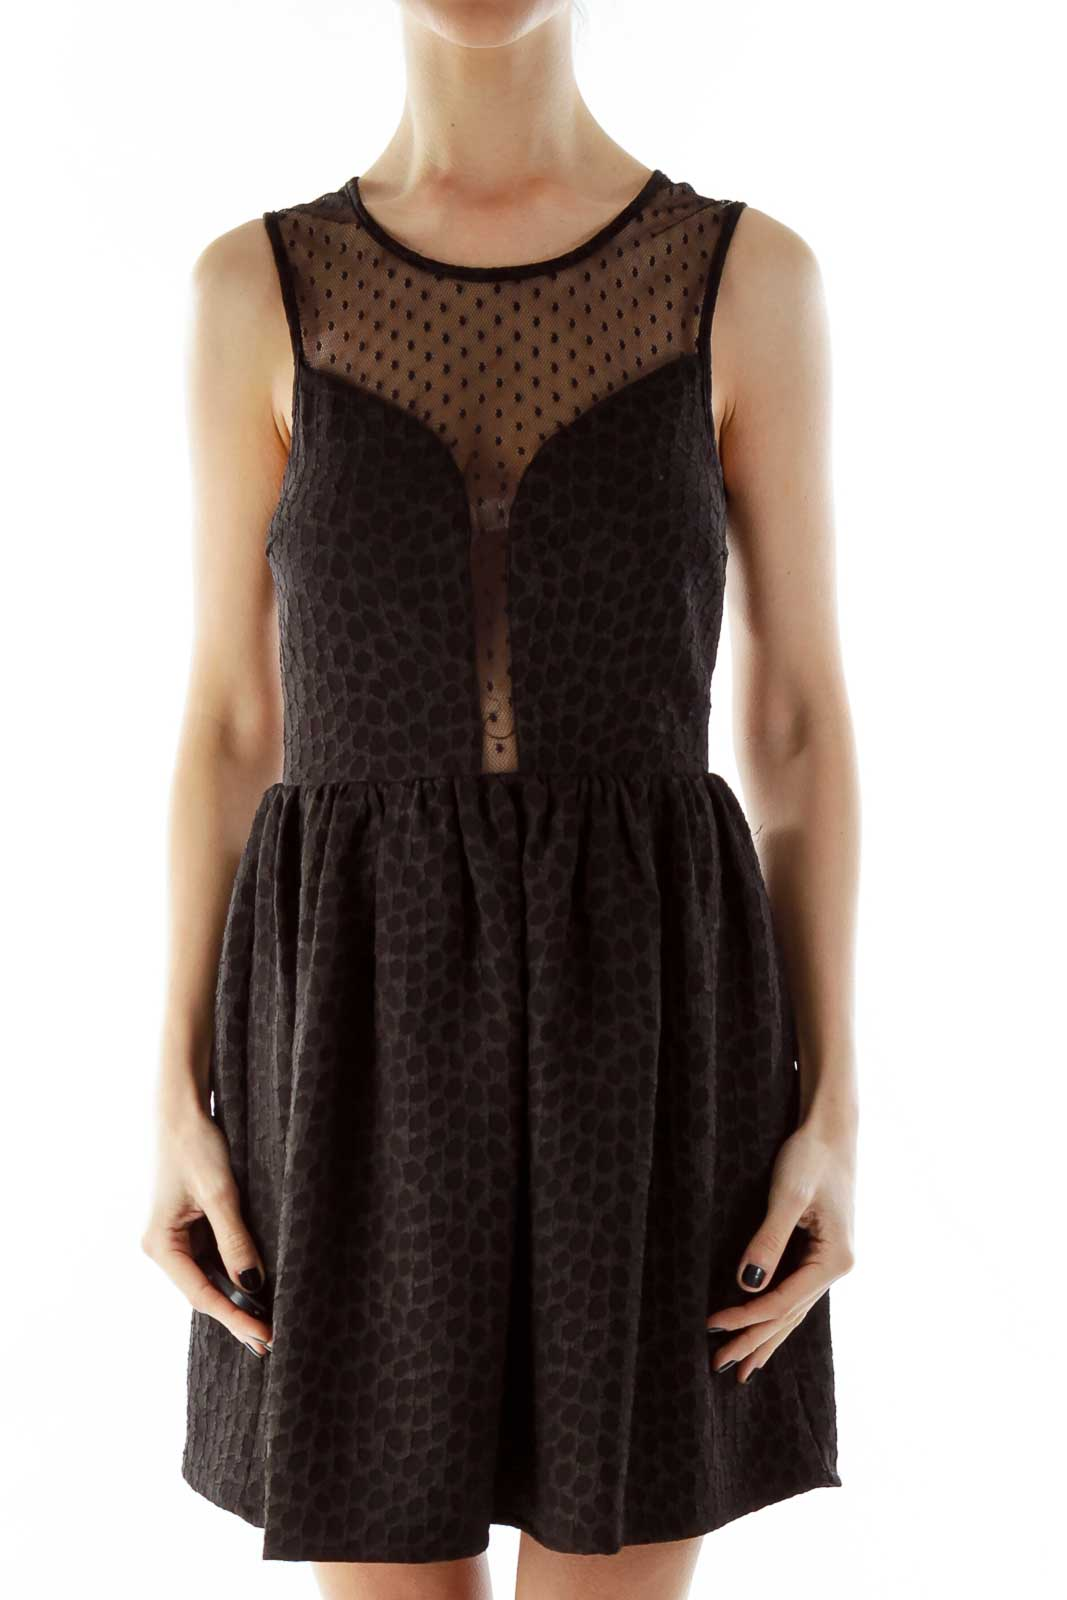 Black Polka-Dot See Through Textured Dress Front